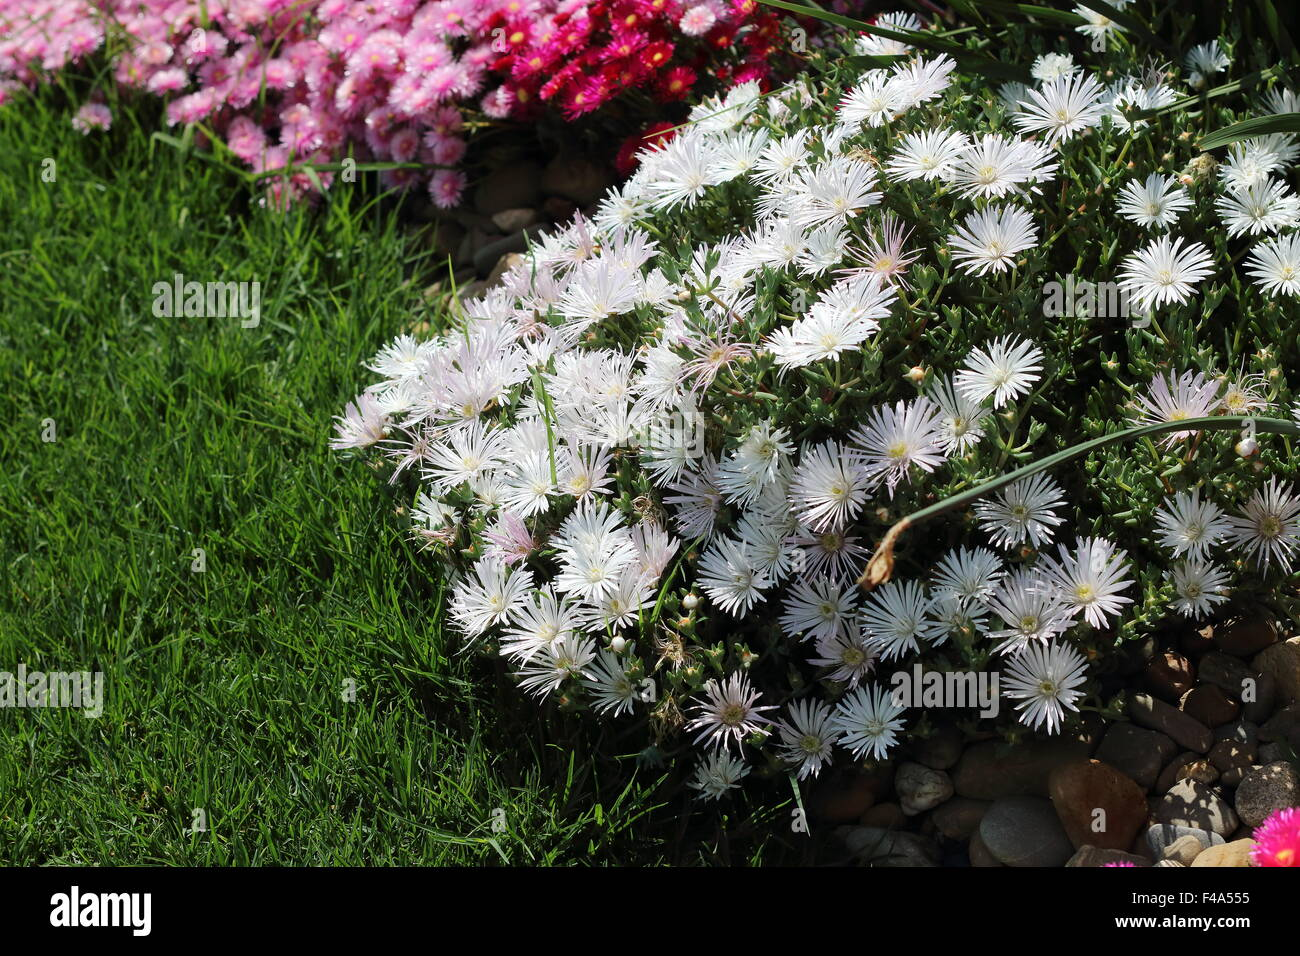 Daisy Pink White Ground Cover Stock Photos Daisy Pink White Ground